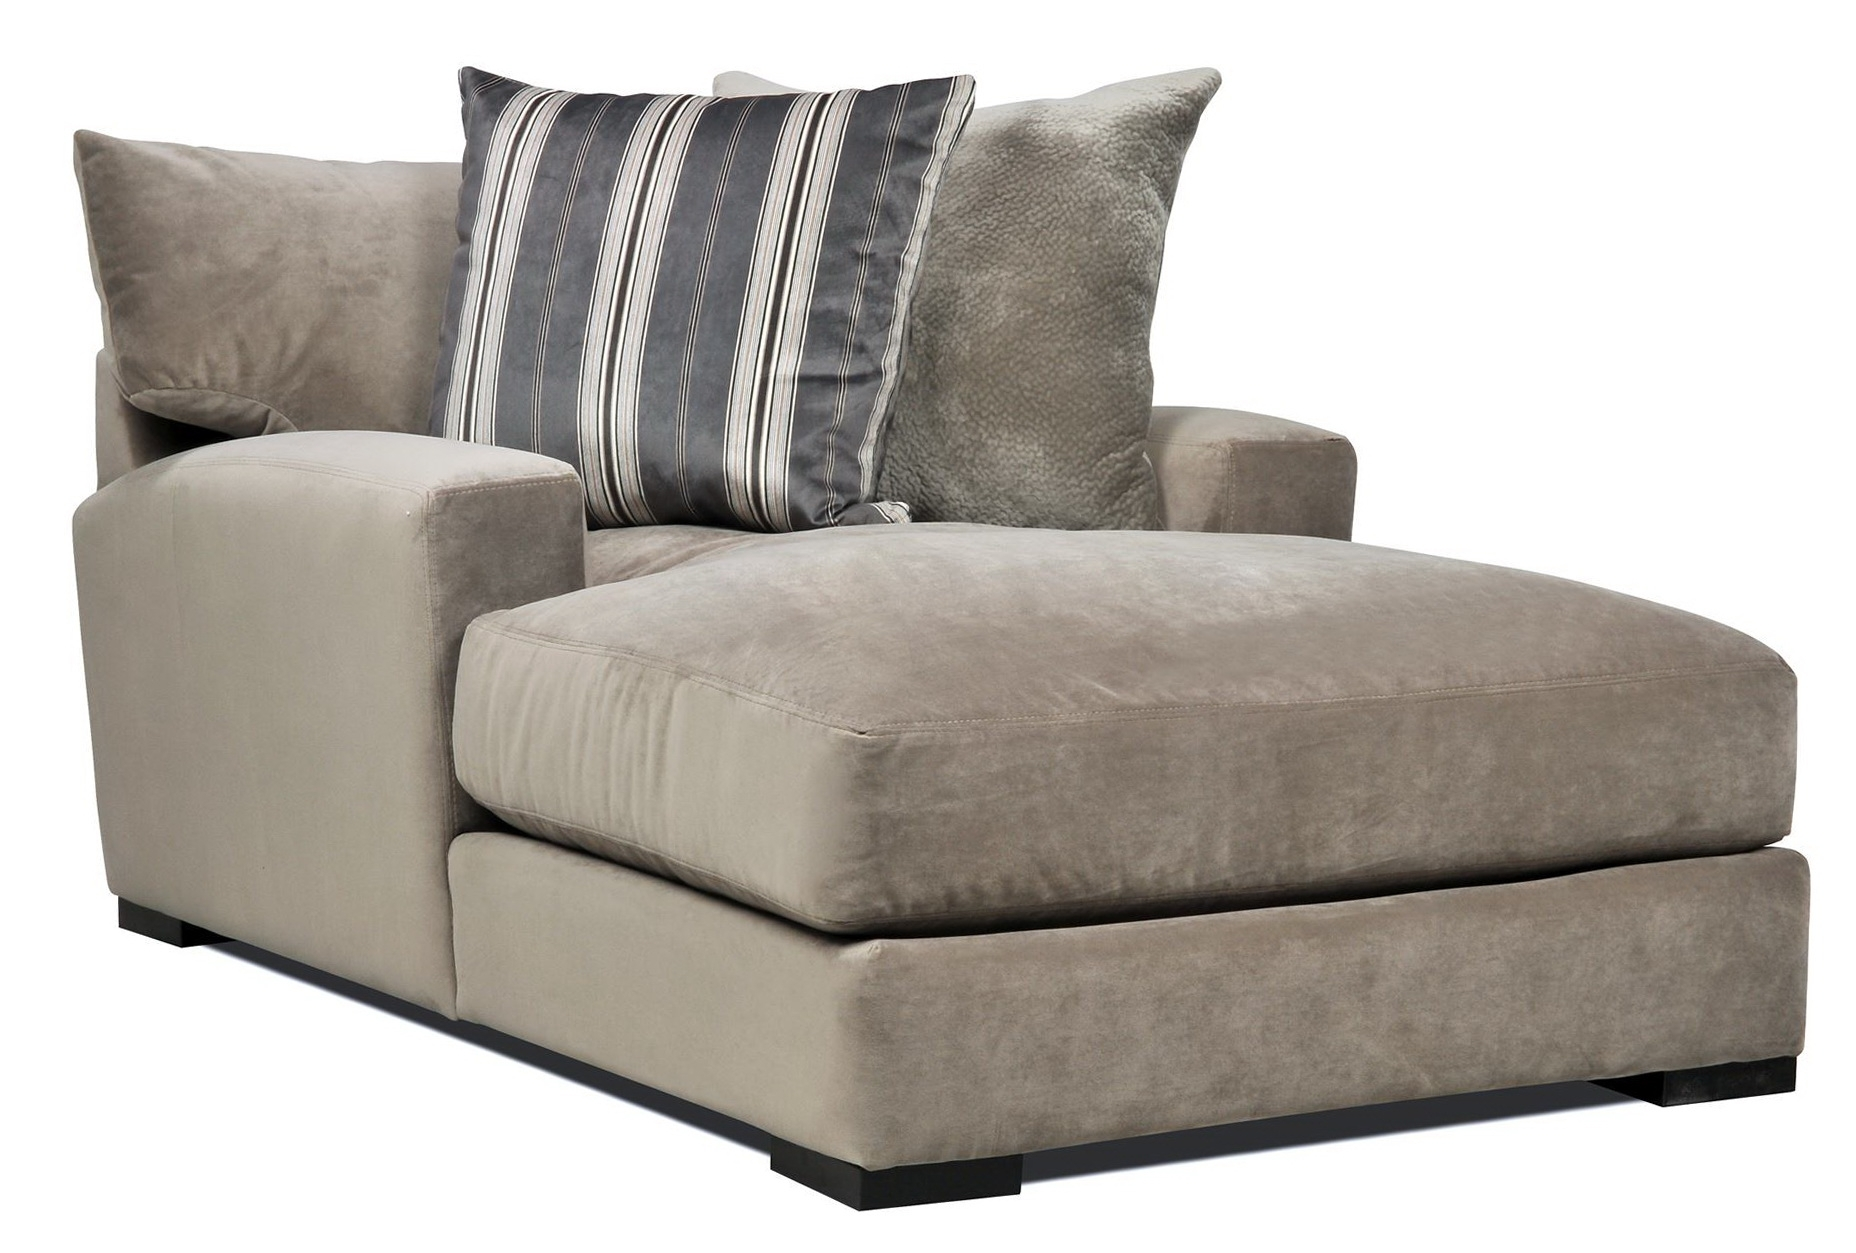 Most Popular Double Wide Chaise Lounge Indoor With 2 Cushions (View 13 of 15)